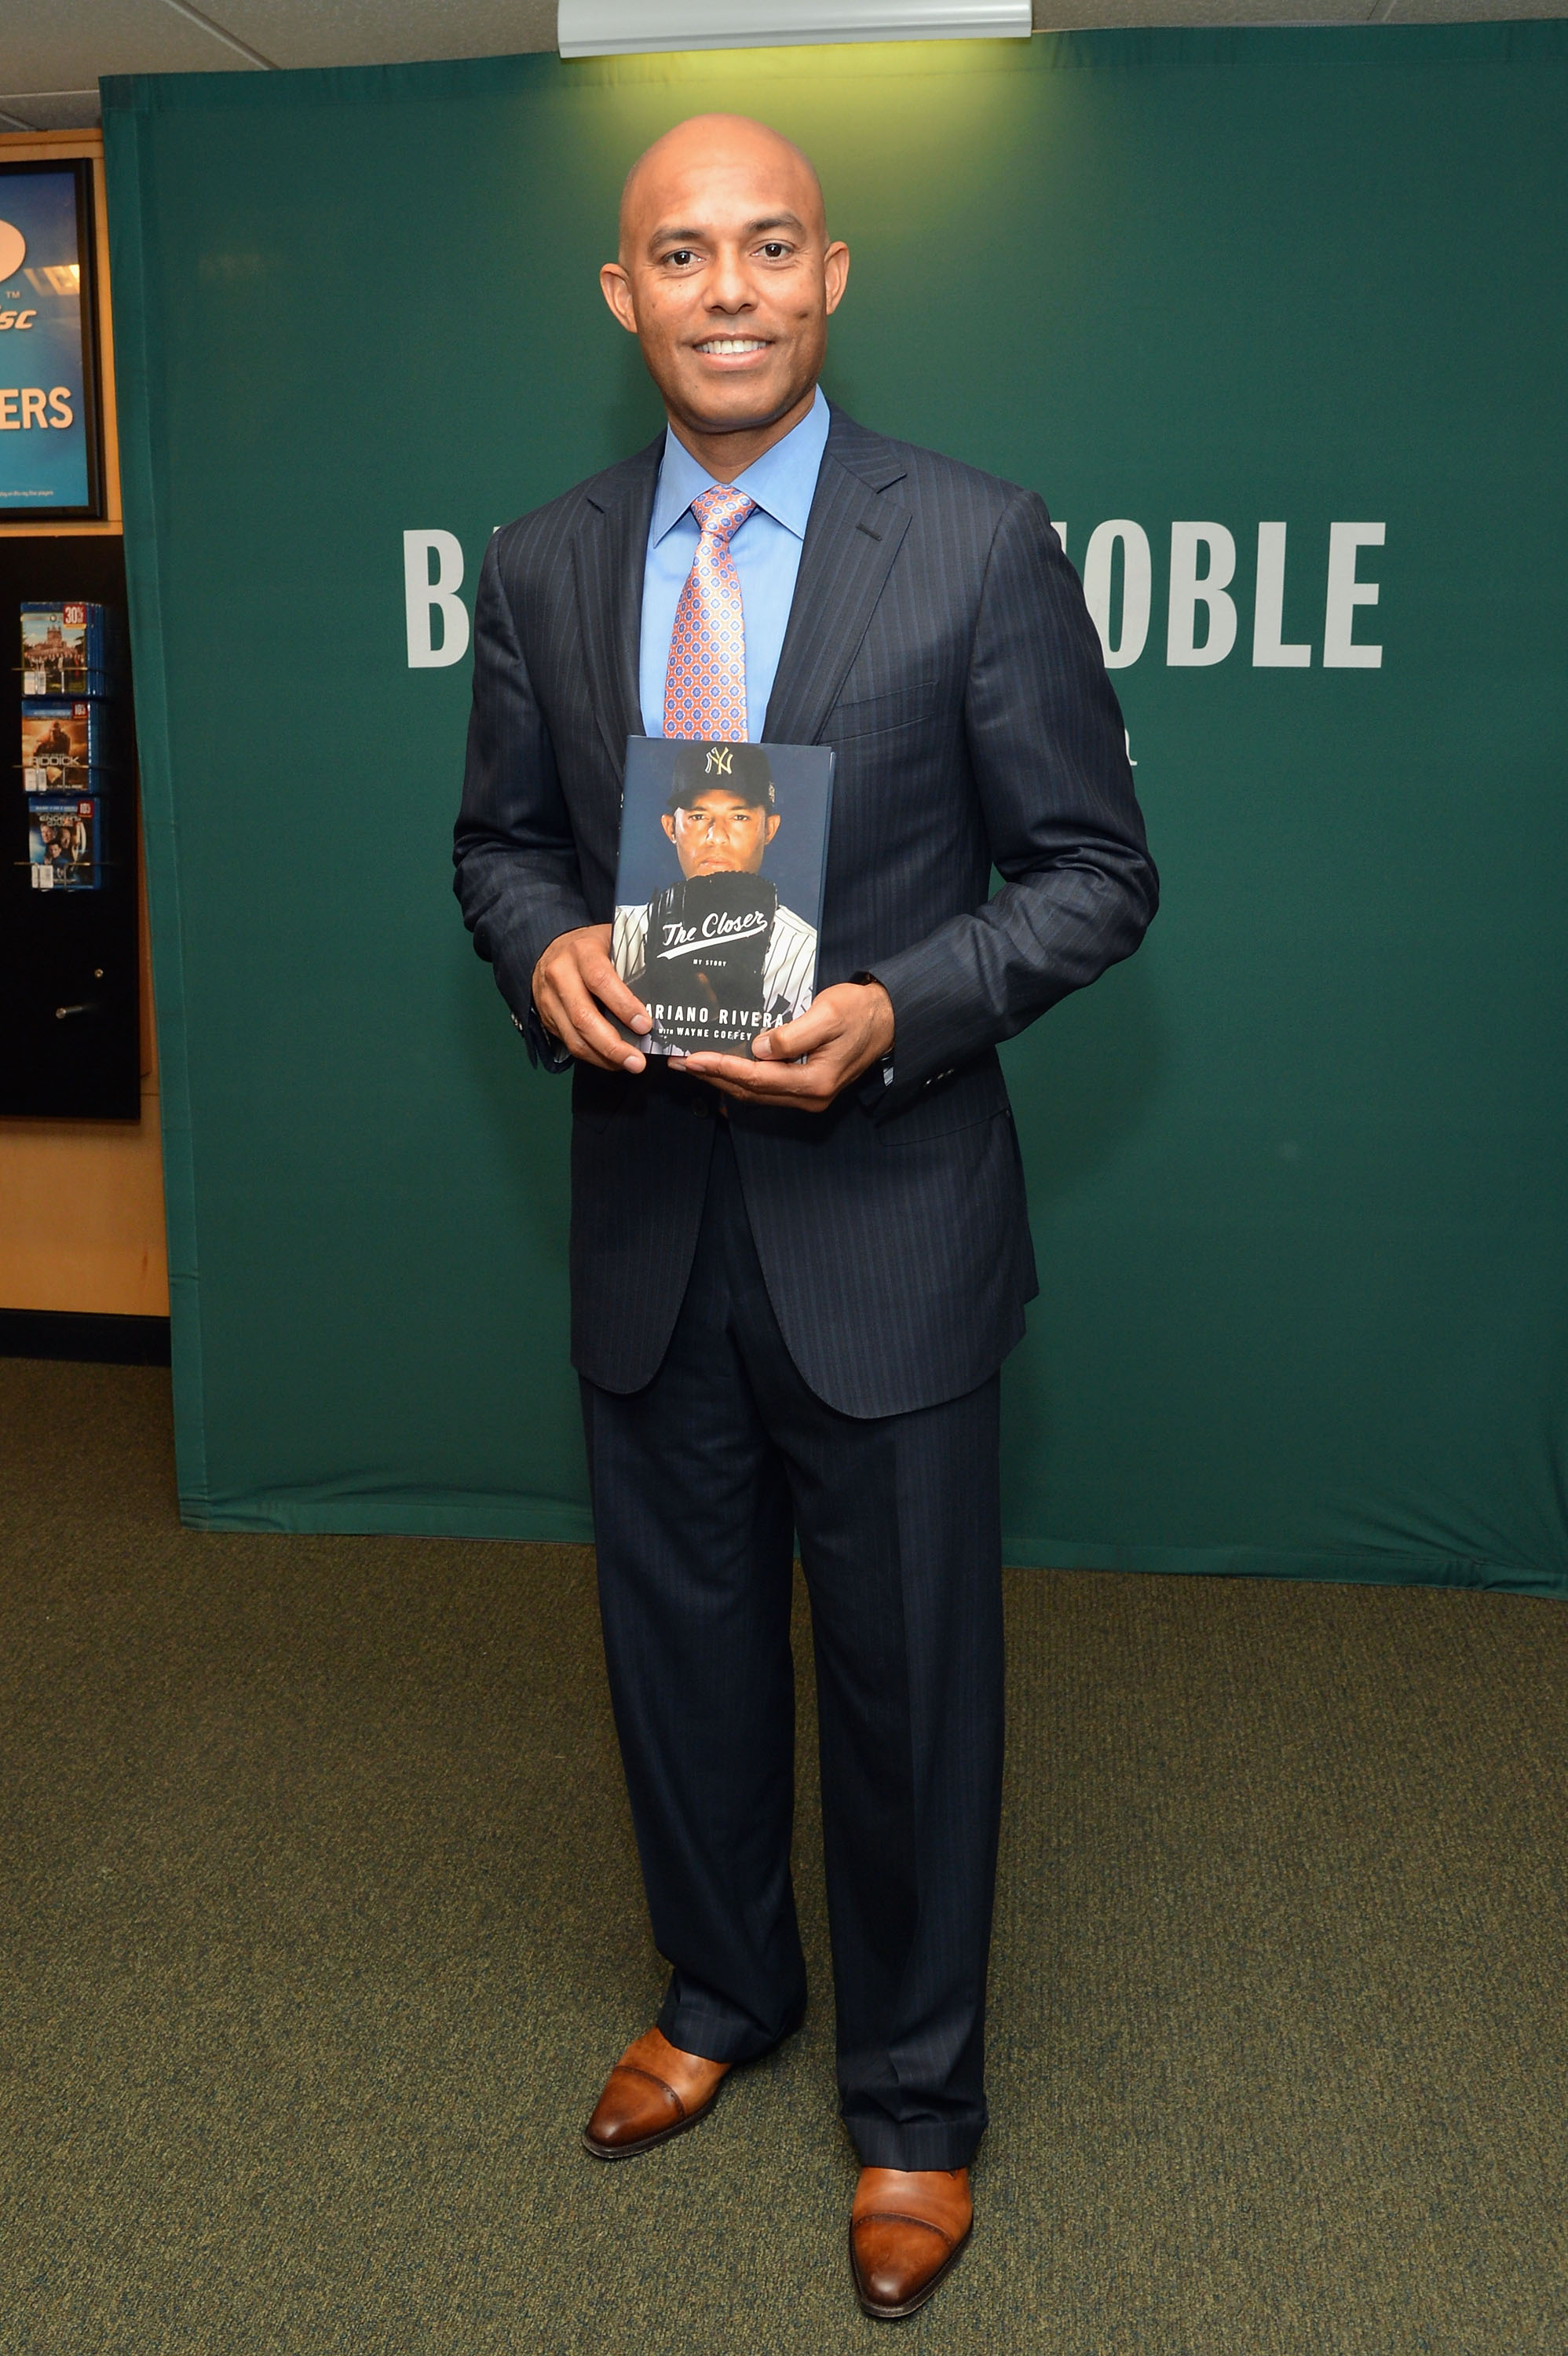 """Mariano Rivera Signs Copies Of His Book """"The Closer: My Story"""""""